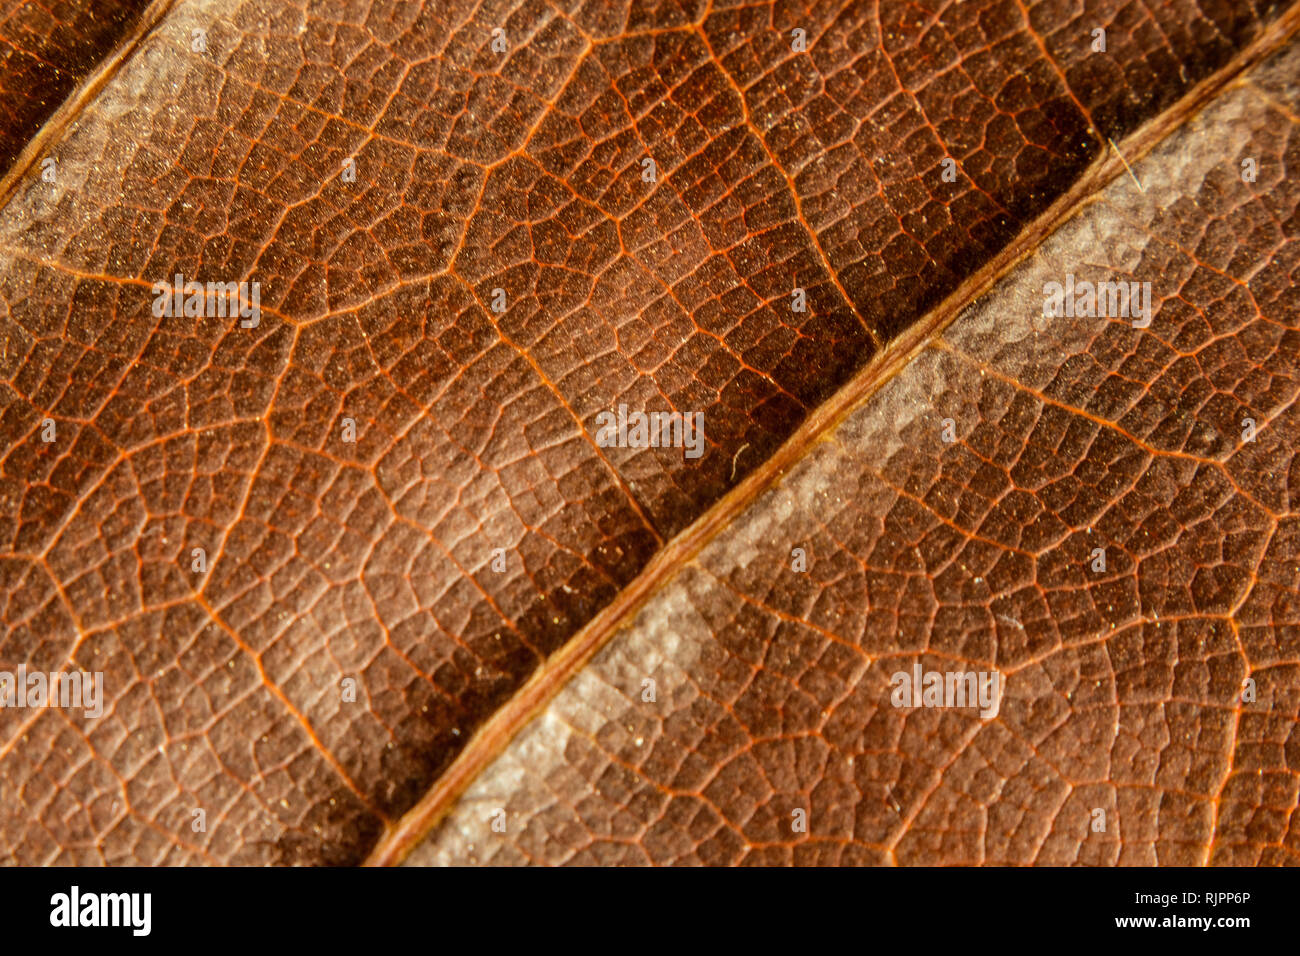 texture background front of dry leaf of ficus lyrata with its ribs in full color - Stock Image